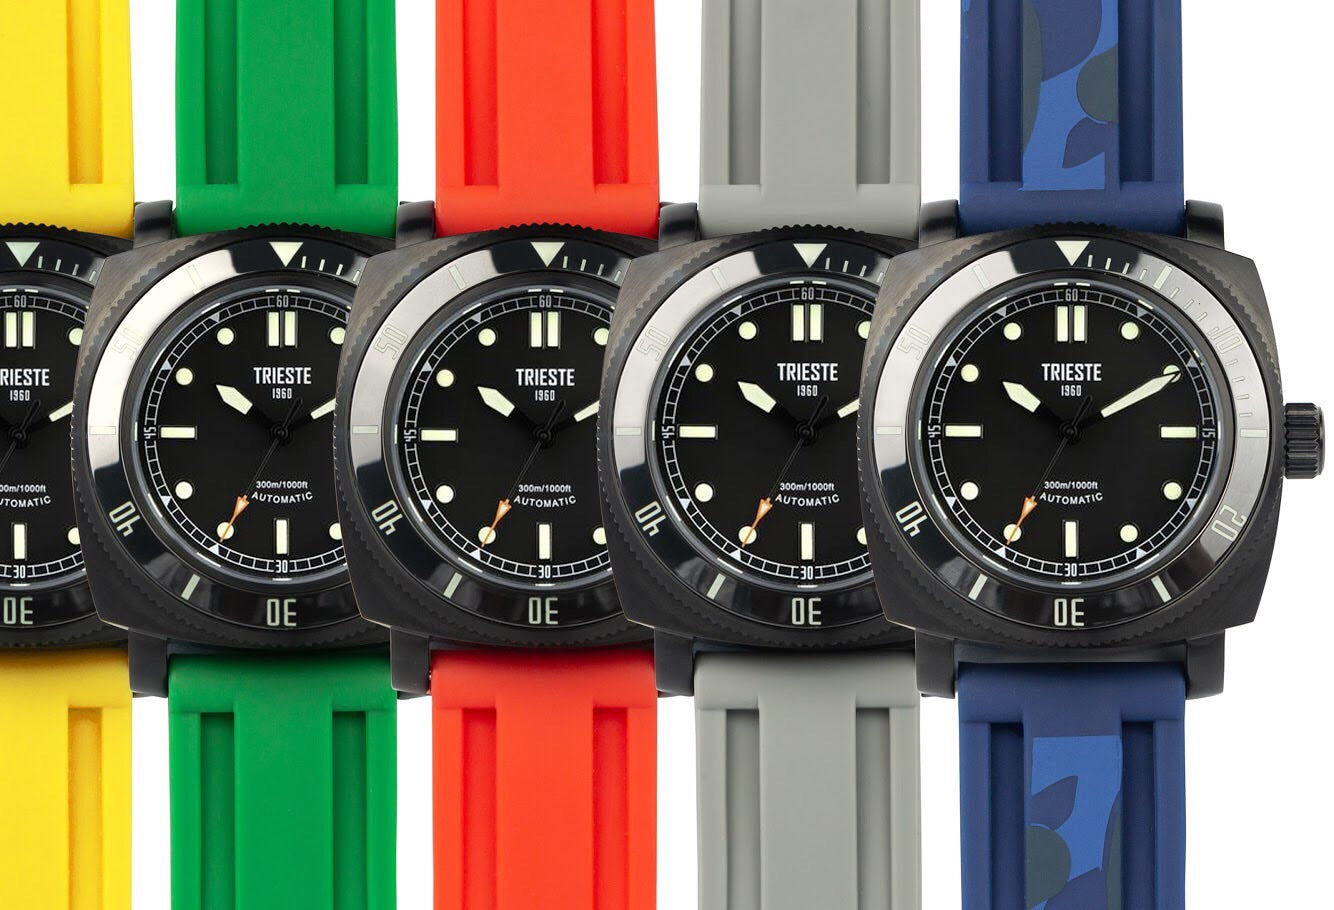 TRIESTE Watch Straps - Rubber